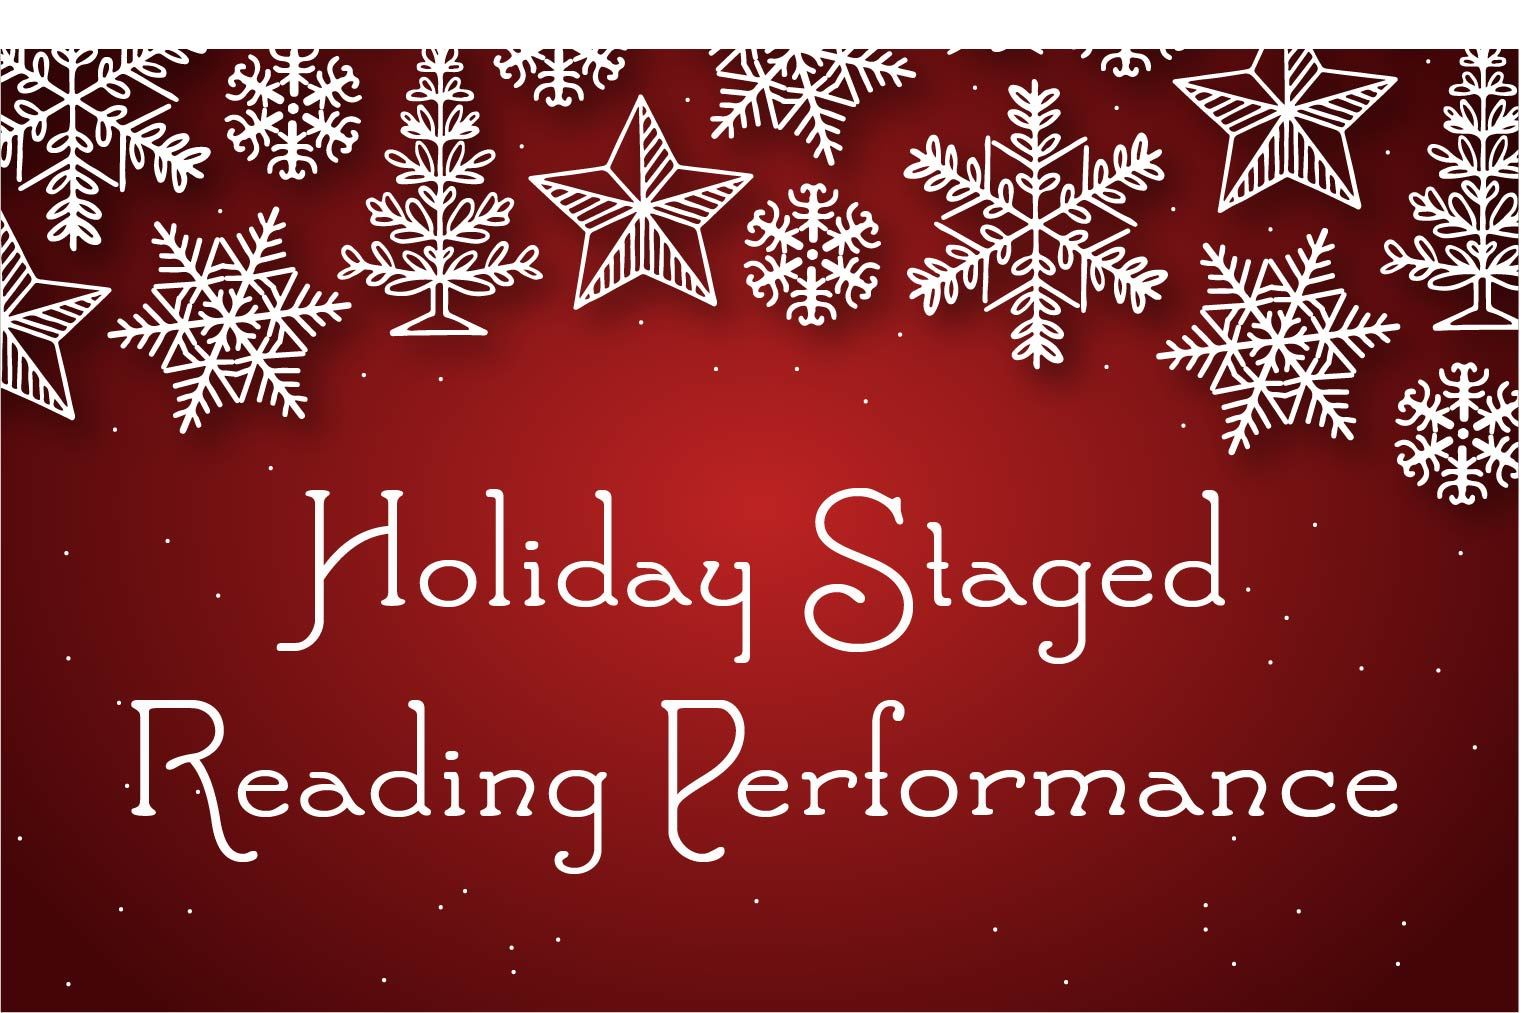 Holiday Reading Performance